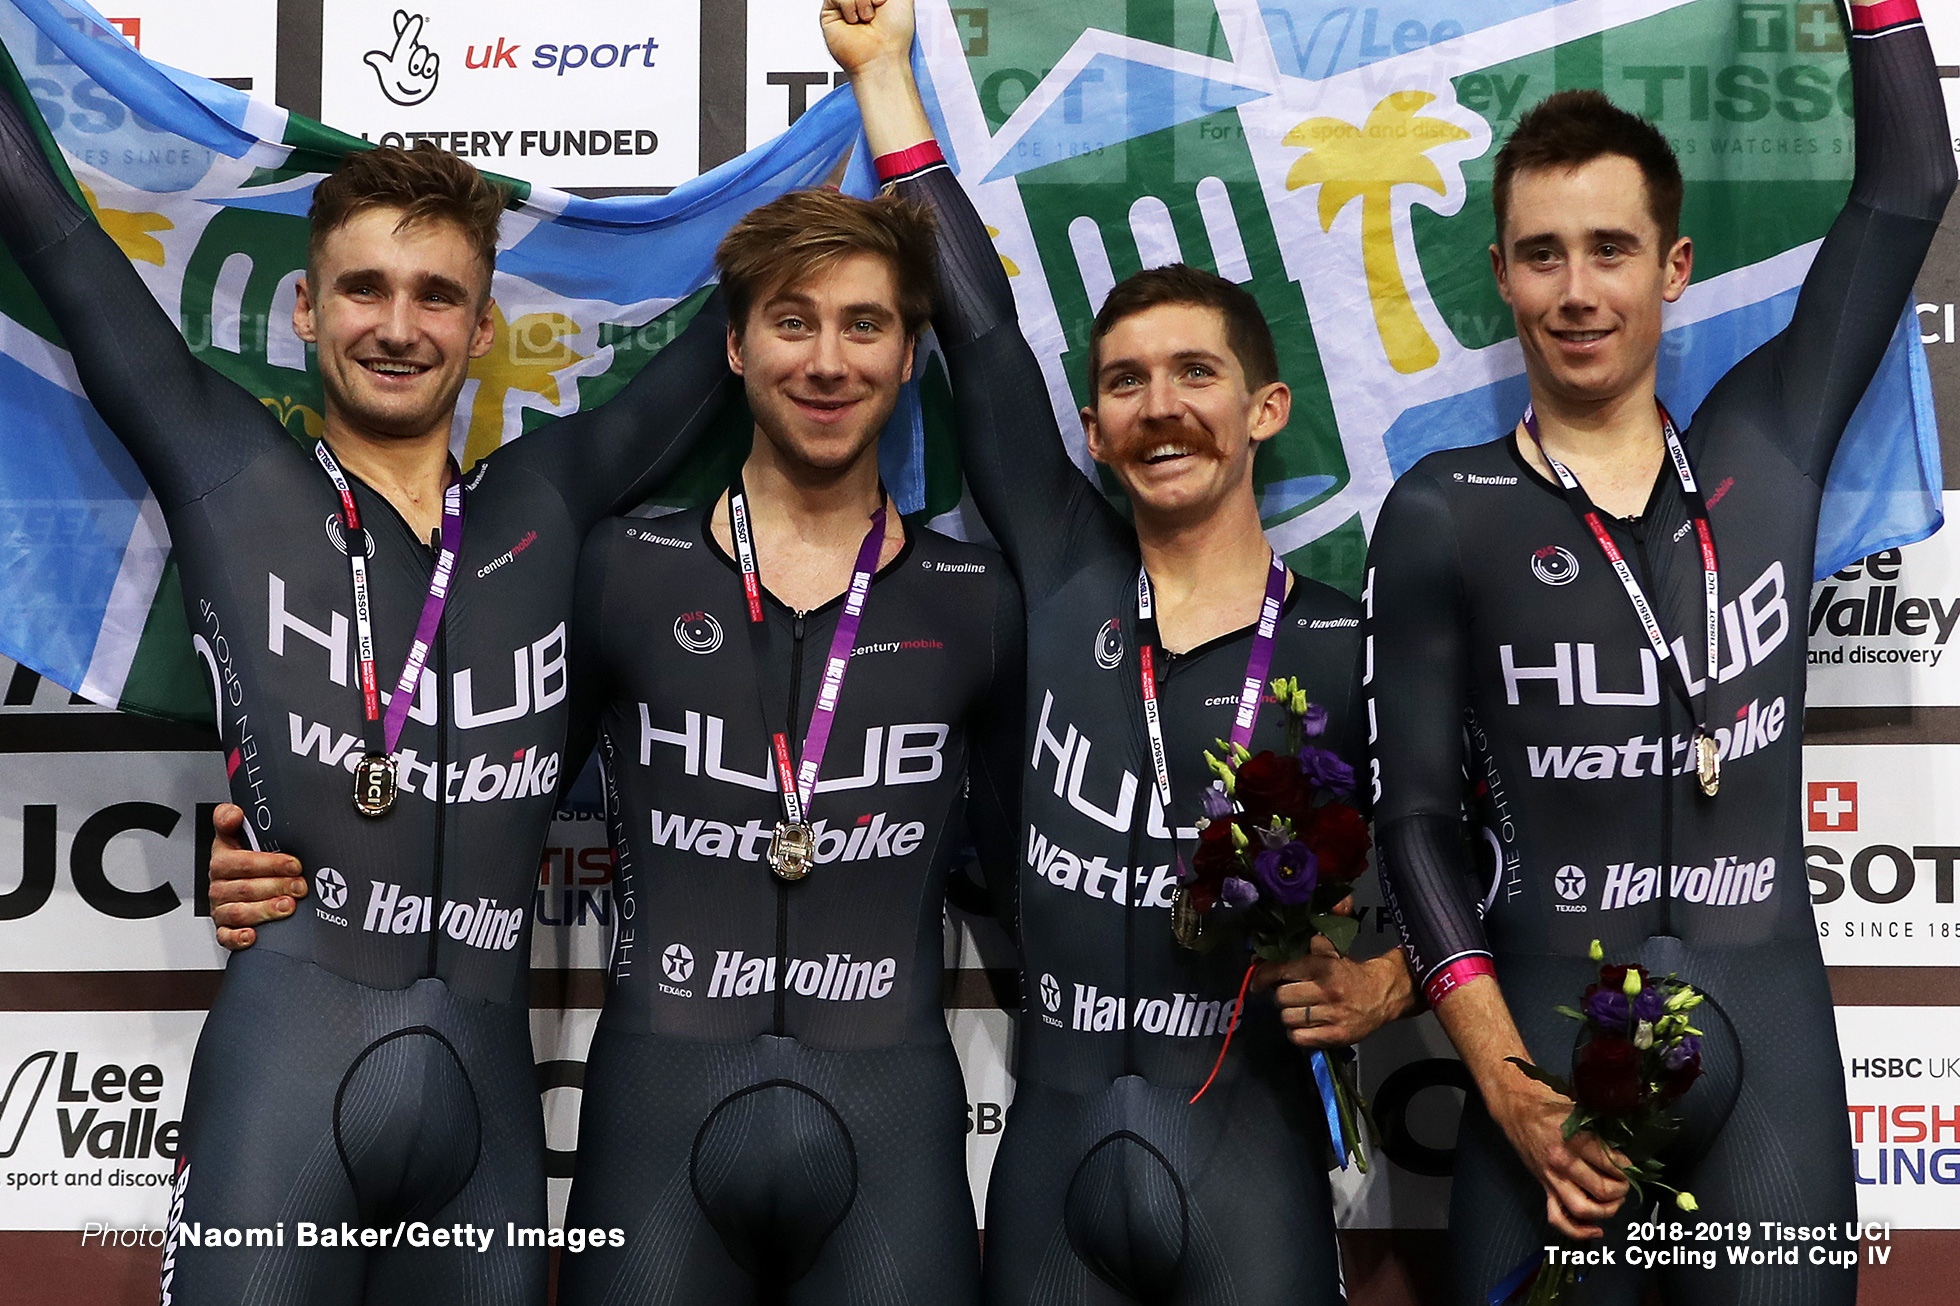 Men's Team Pursuit/Final/2018-2019 Track Cycling World Cup IV London